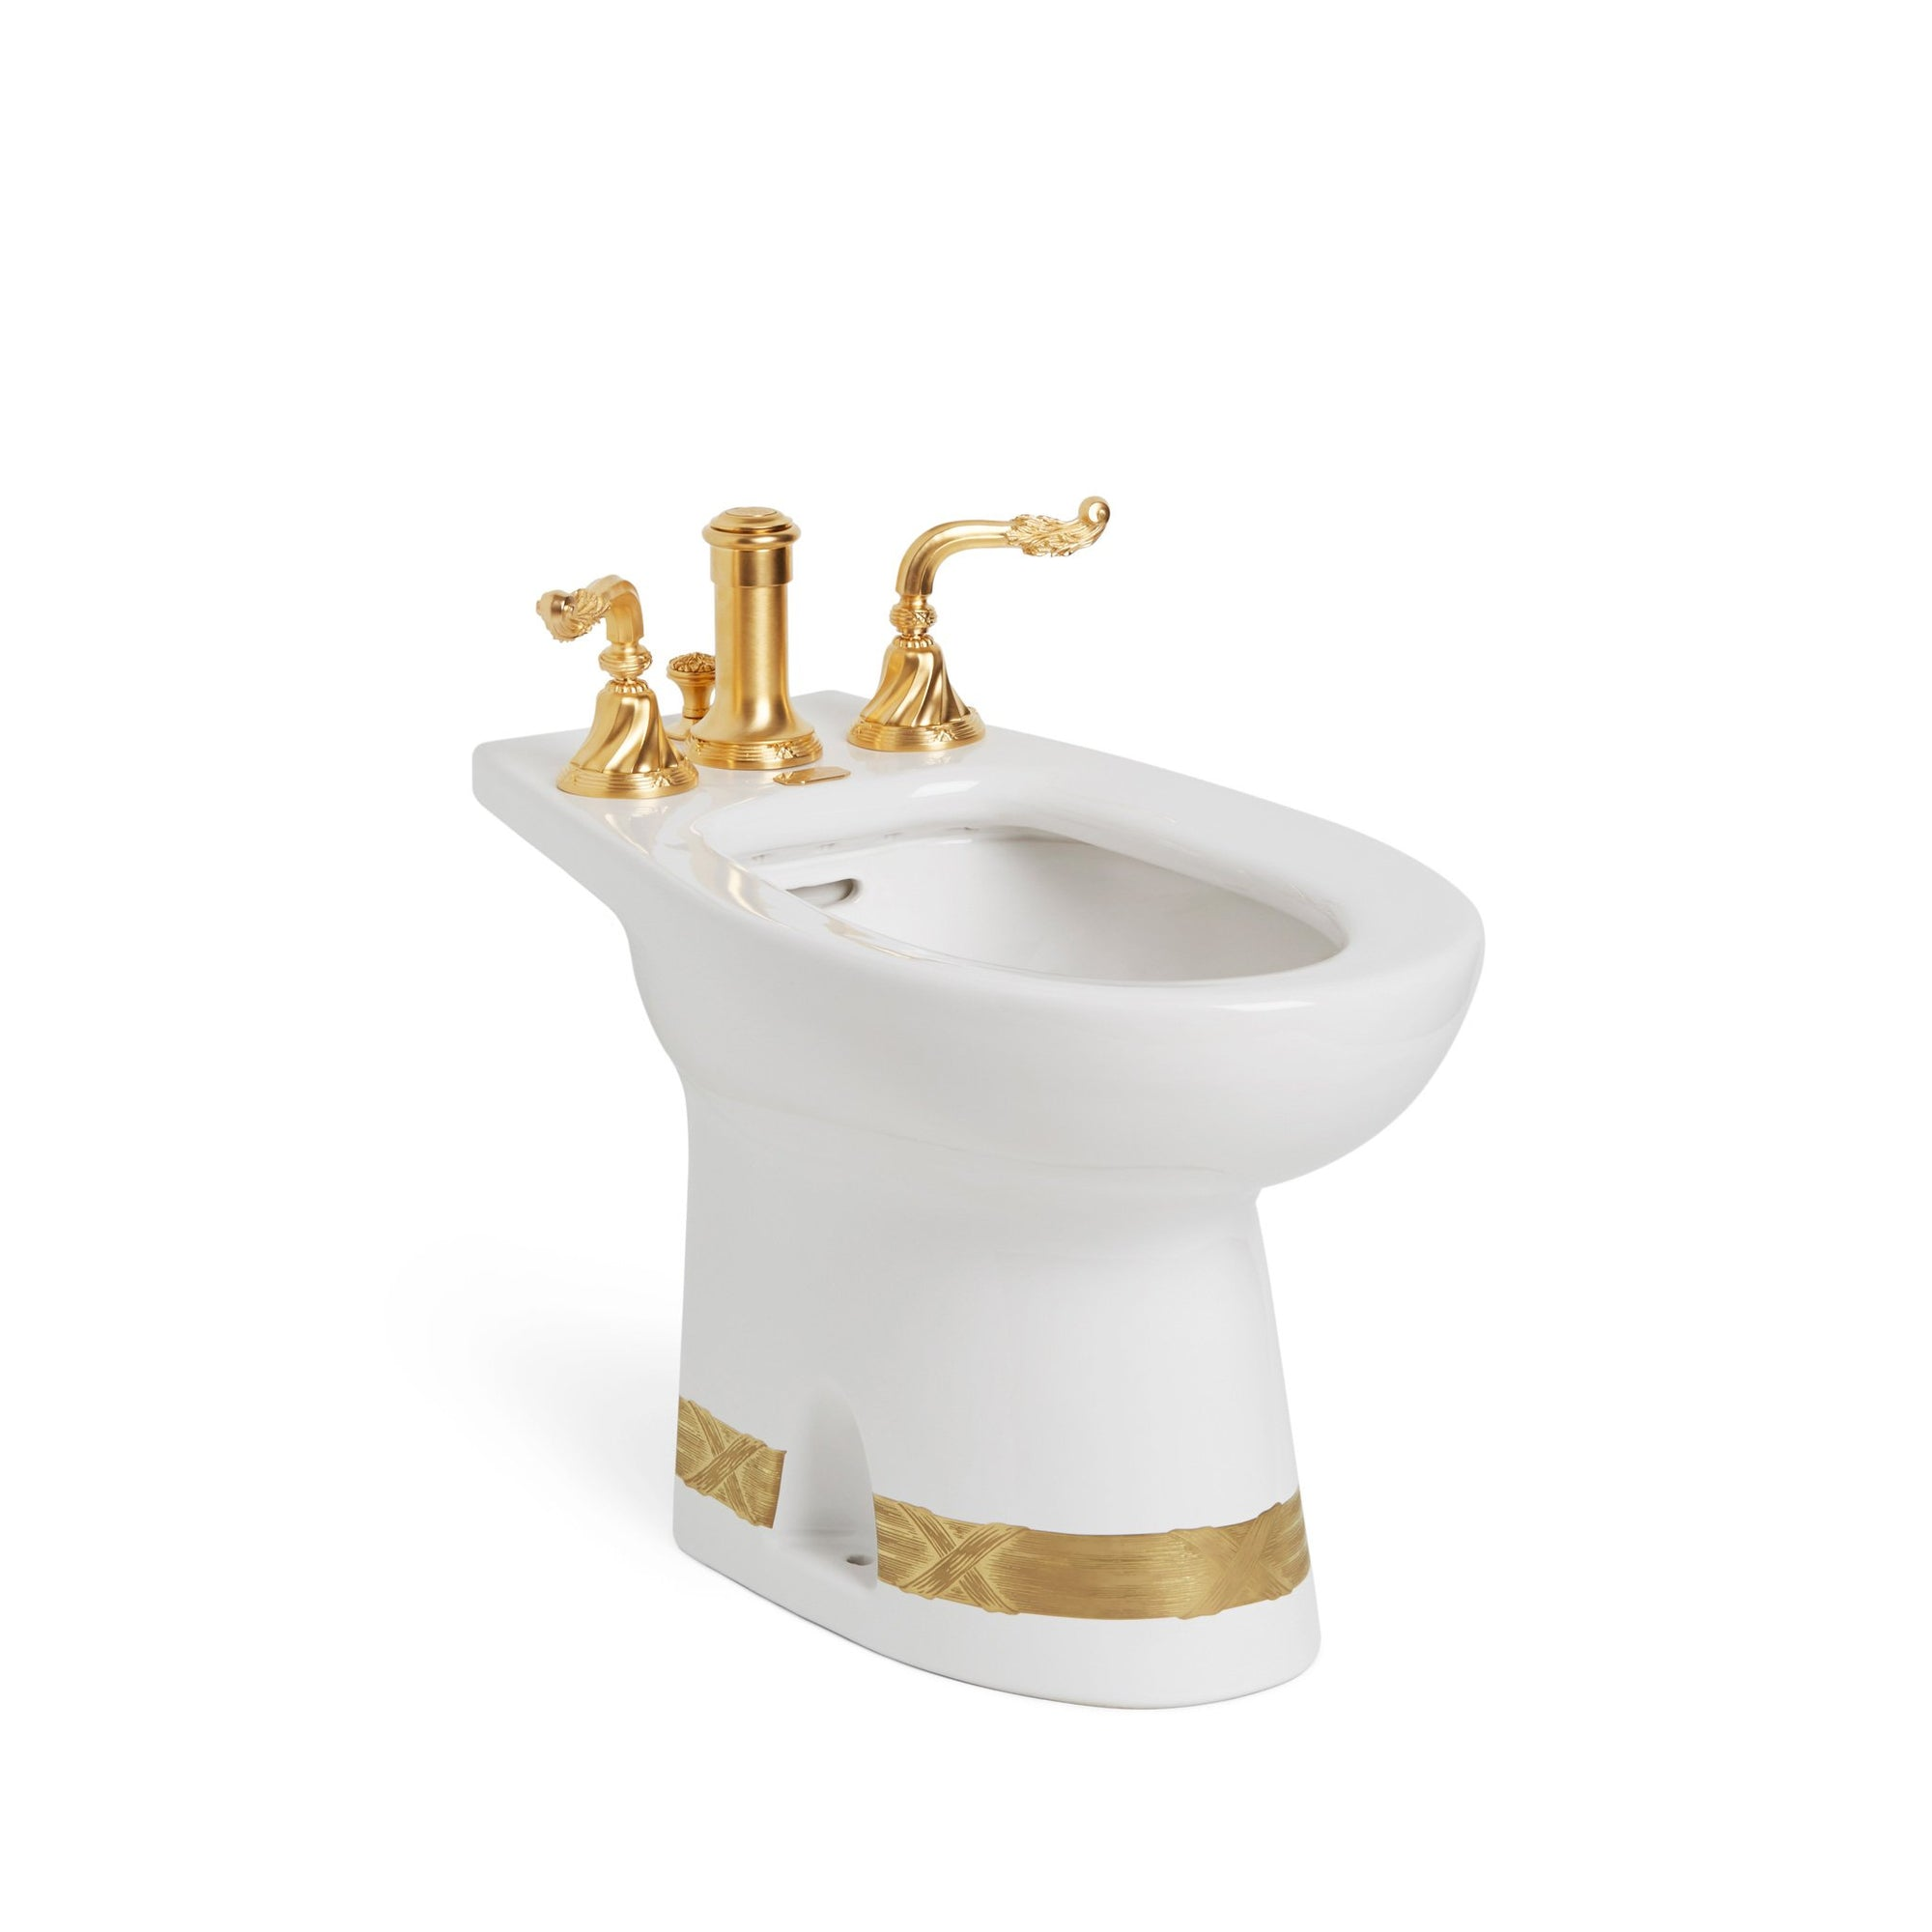 0235-T4-3EN-G-WH Sherle Wagner International Banded Burnished Gold Ribbon & Reed on White Ceramic Bidet